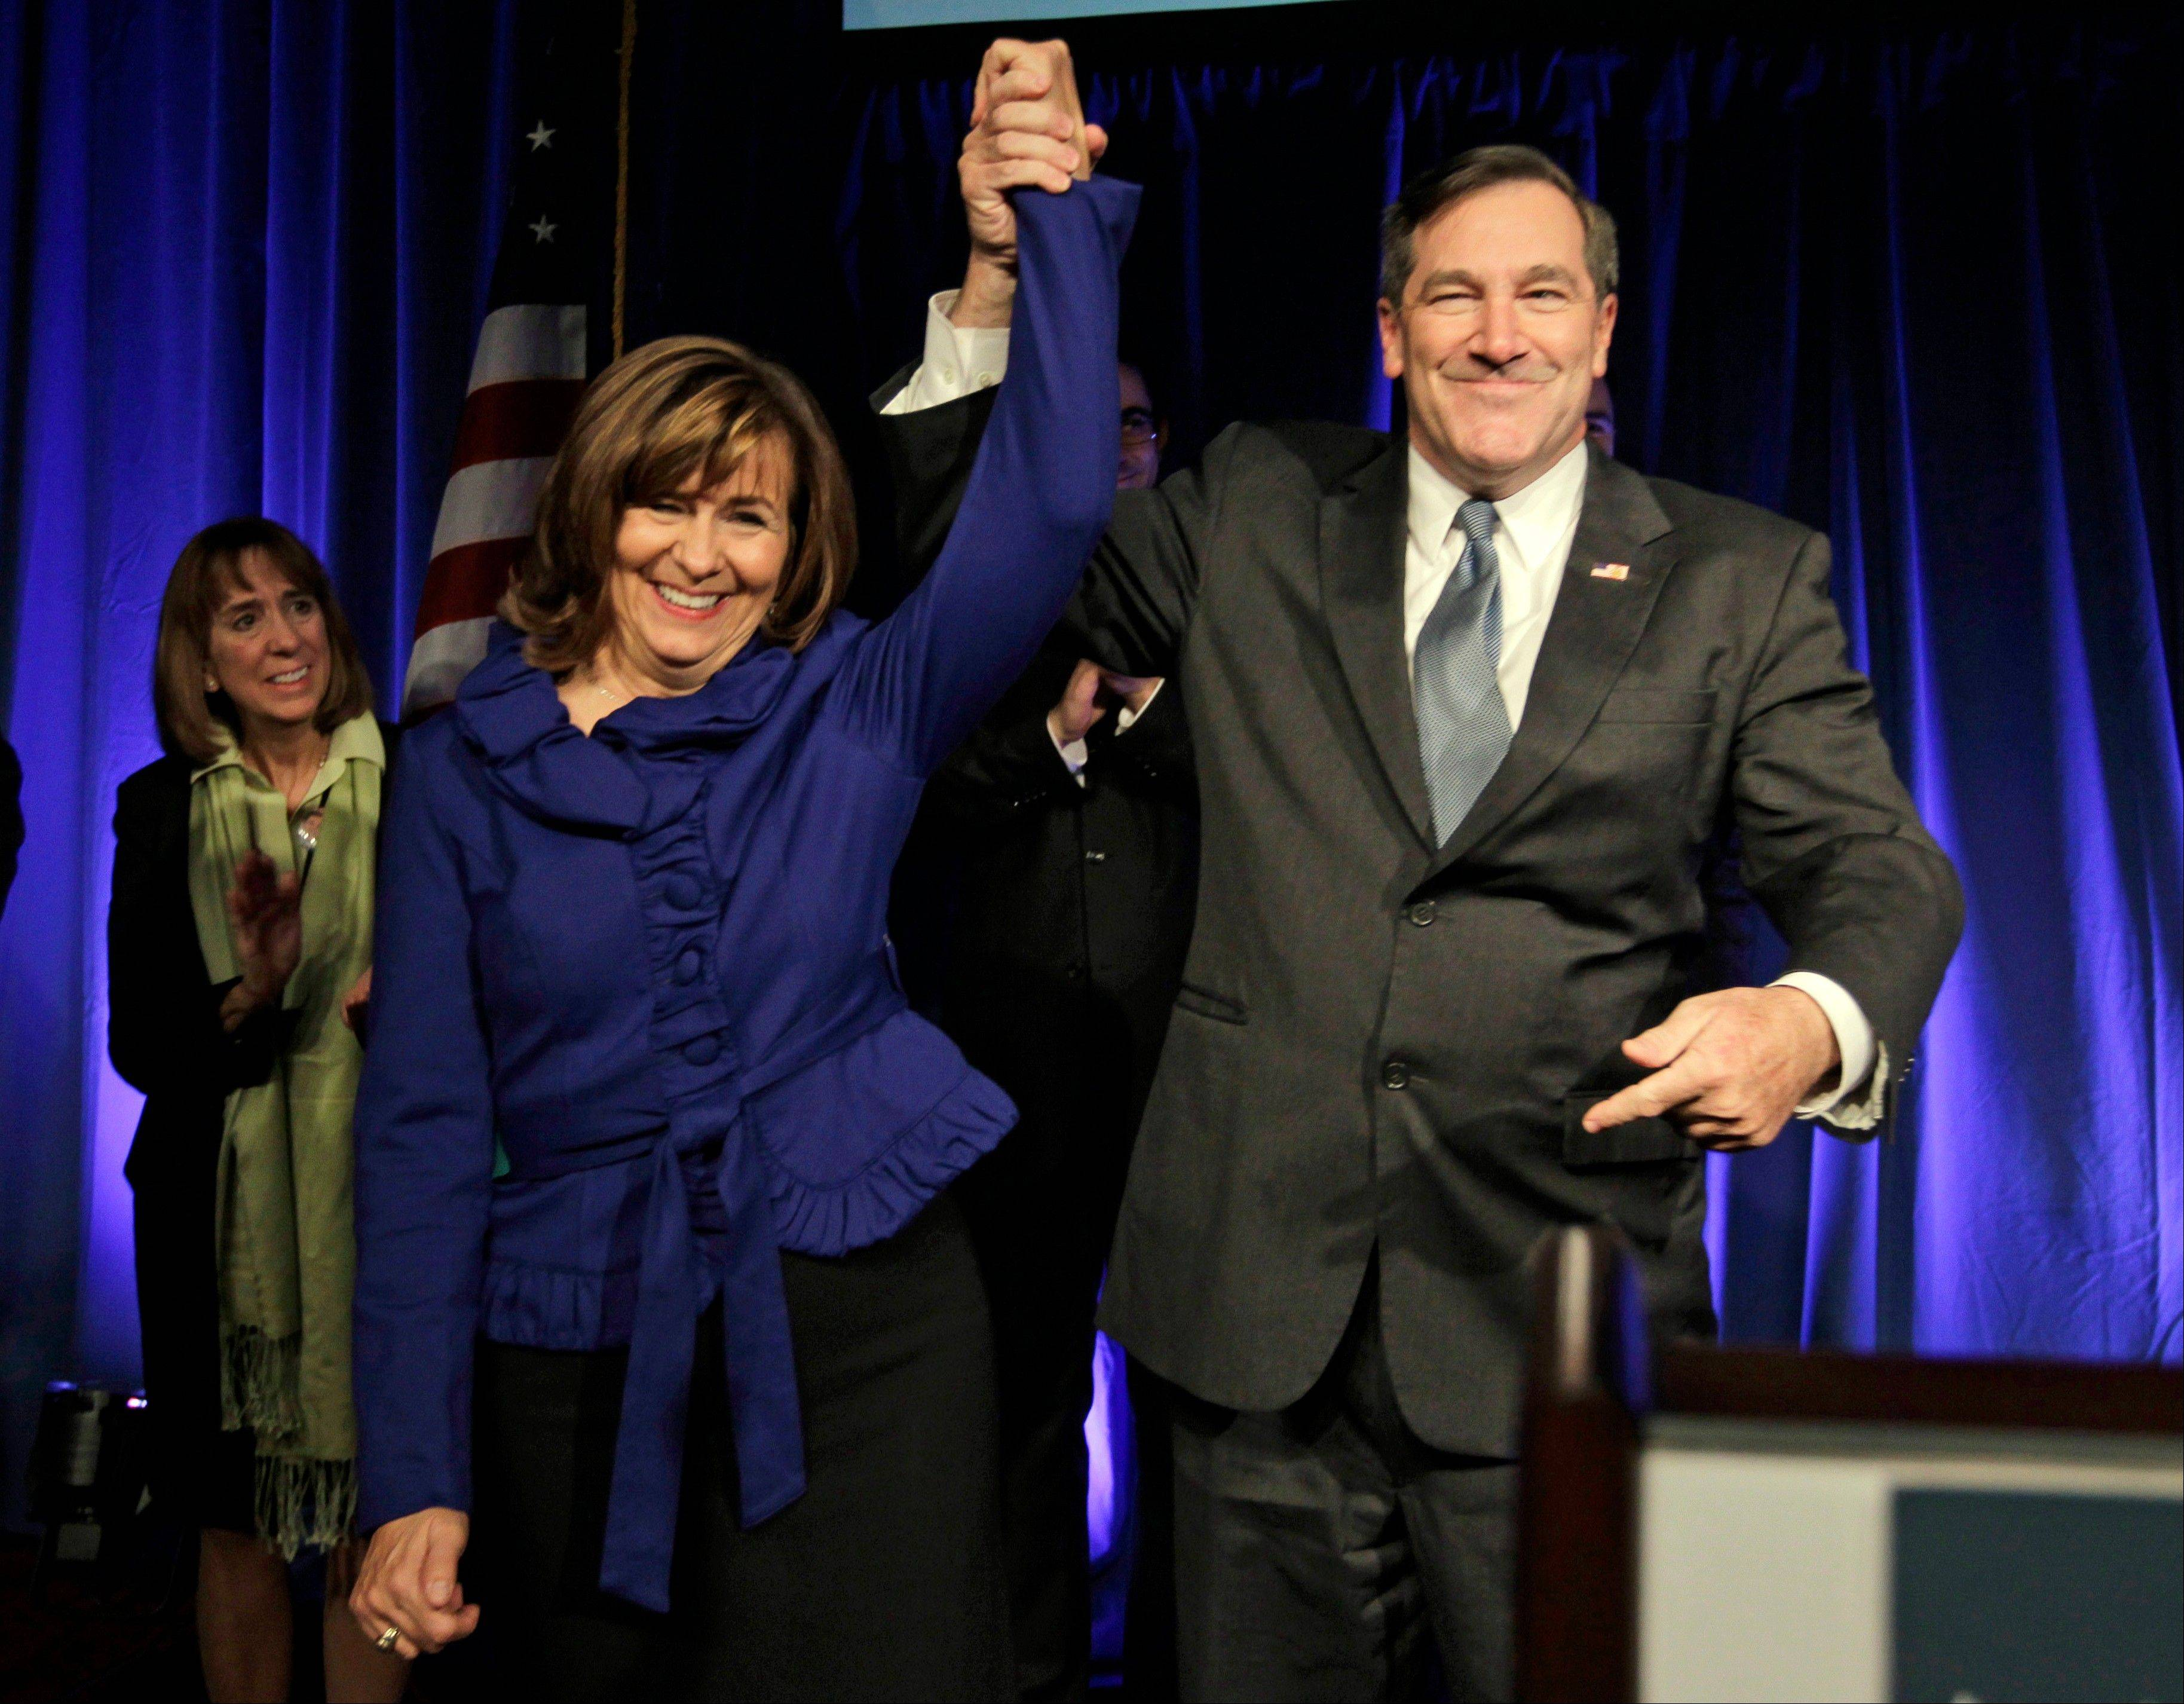 Democrat Joe Donnelly celebrates with his wife Jill after winning the U.S. Senate seat over Republican Richard Mourdock at an election night celebration in Indianapolis.